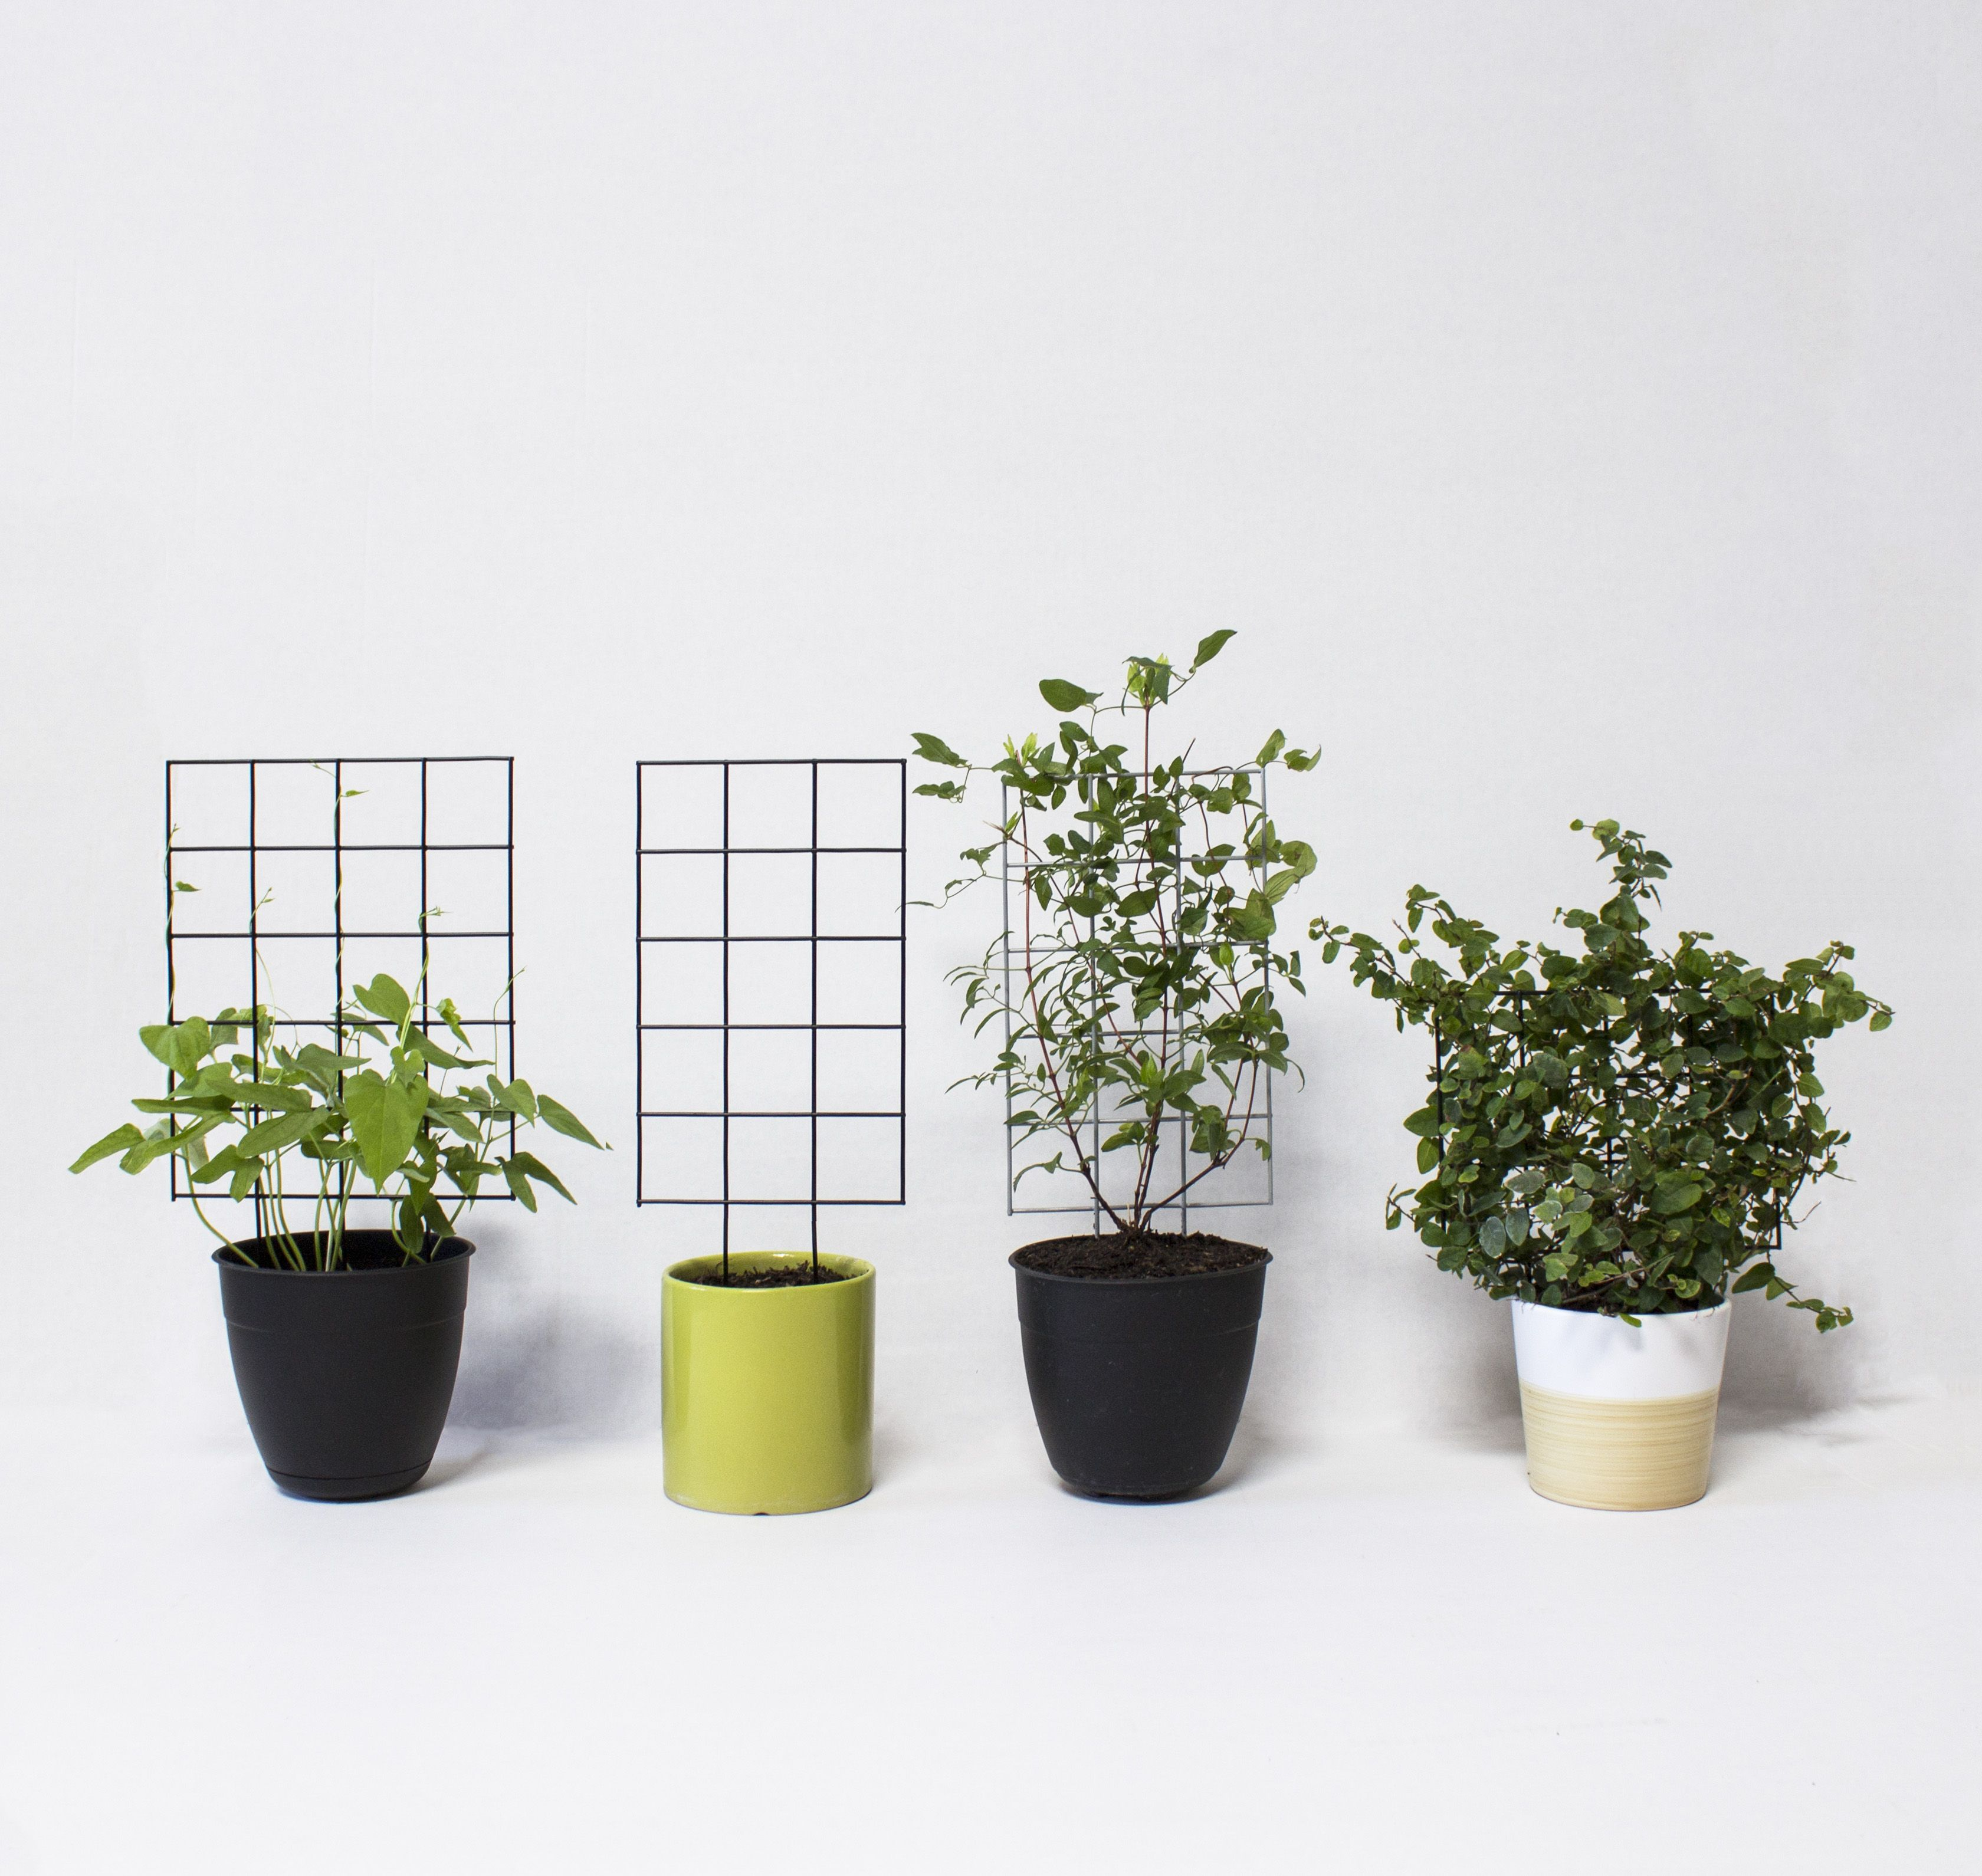 The Trellisito Small Plant Trellises From Trellis Works Trellis Plants Small Plants Mini Garden